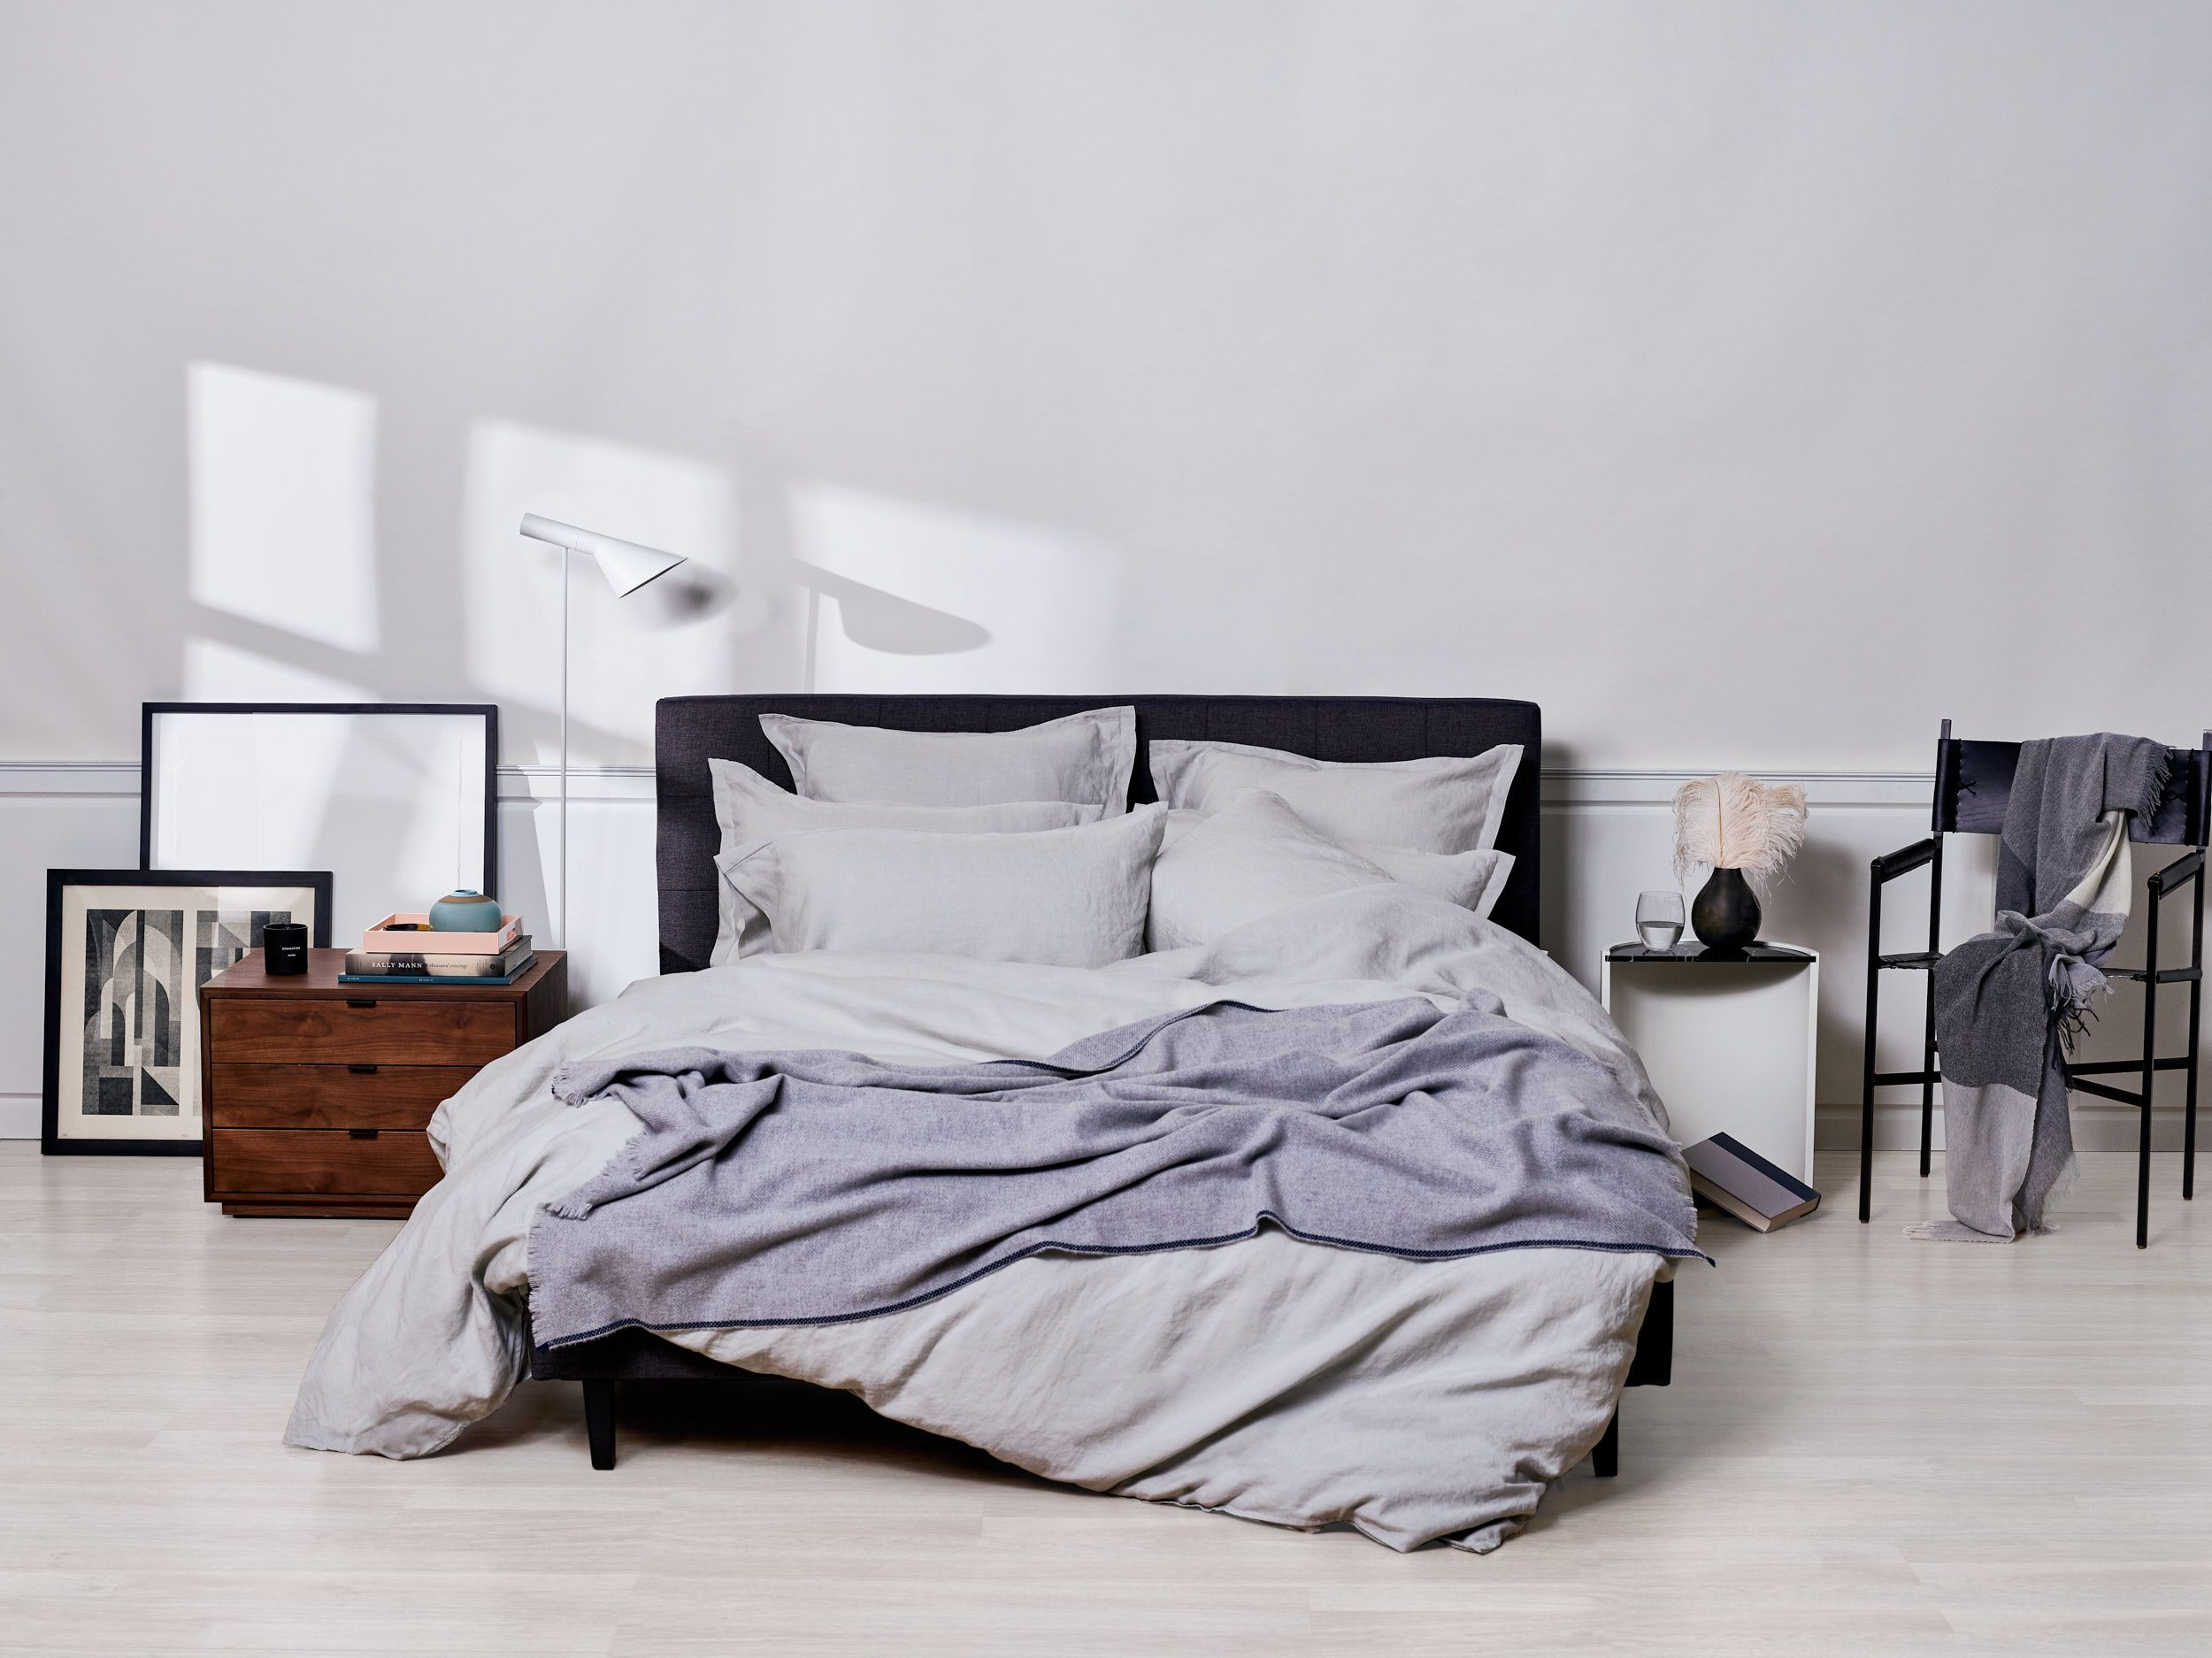 Enjoy the soft texture of linen bed sheets